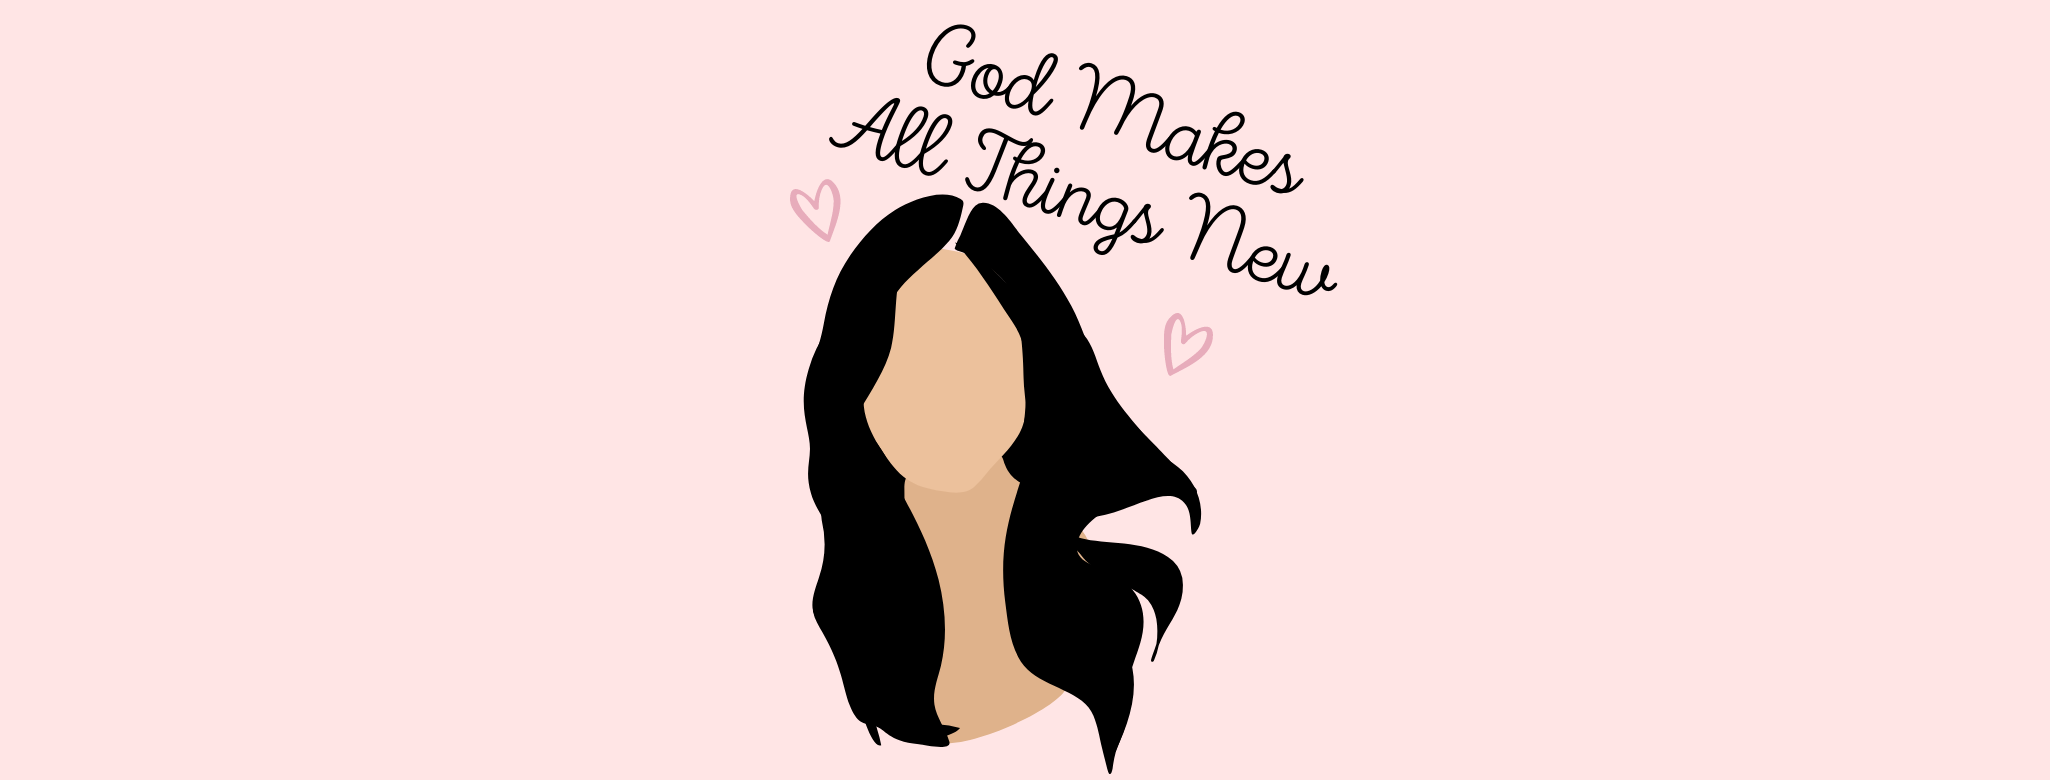 God Makes All Things New